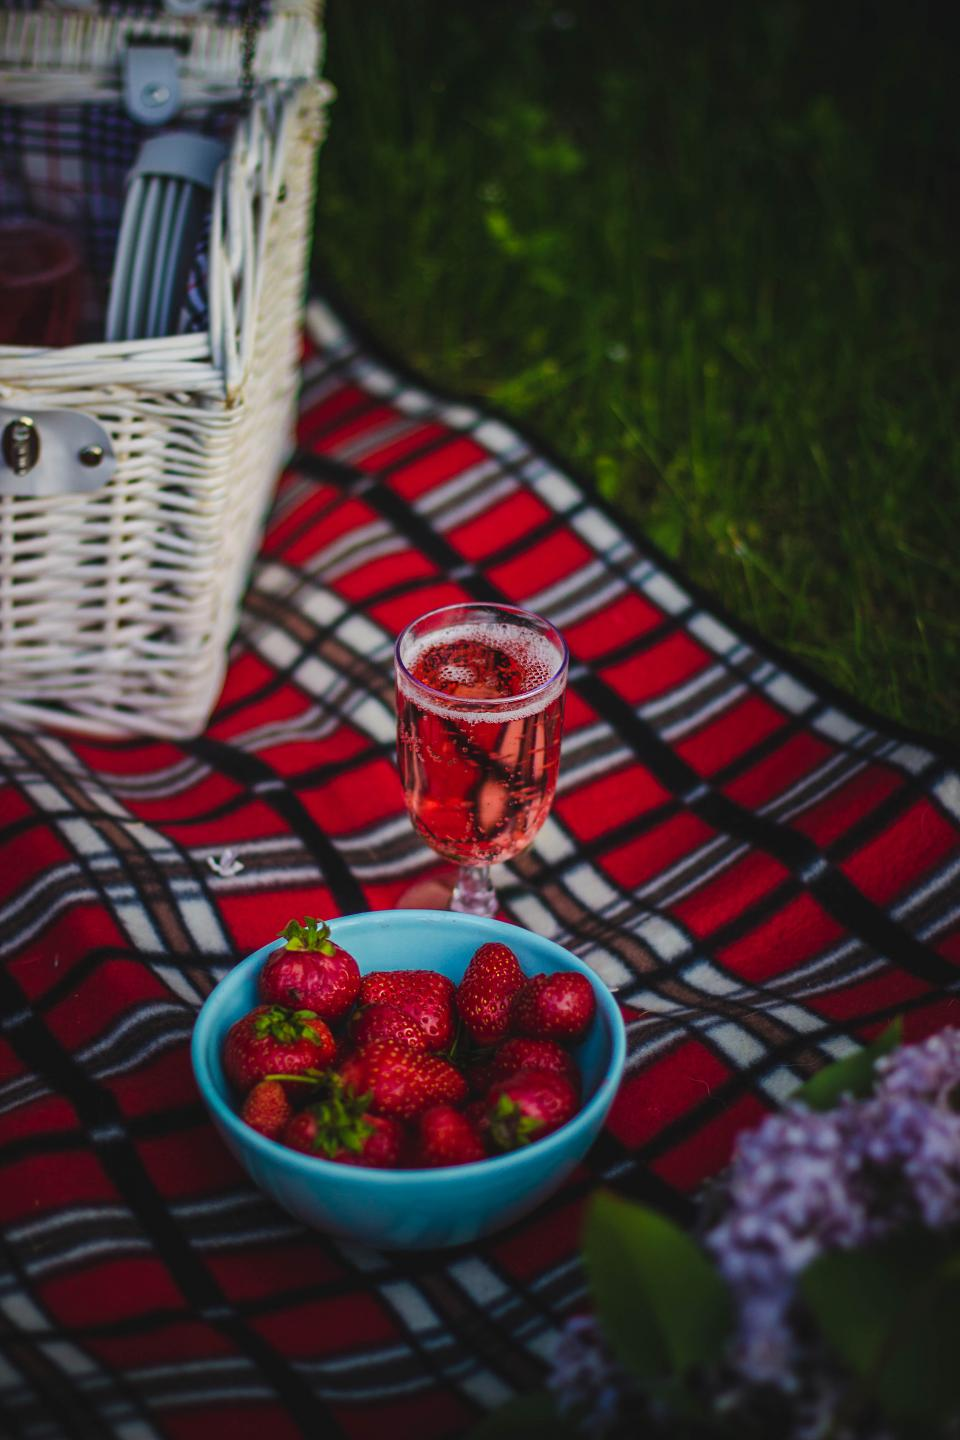 cloth, picnic, outdoor, travel, food, glass, drink, strawberry, fruit, basket, flower, blur